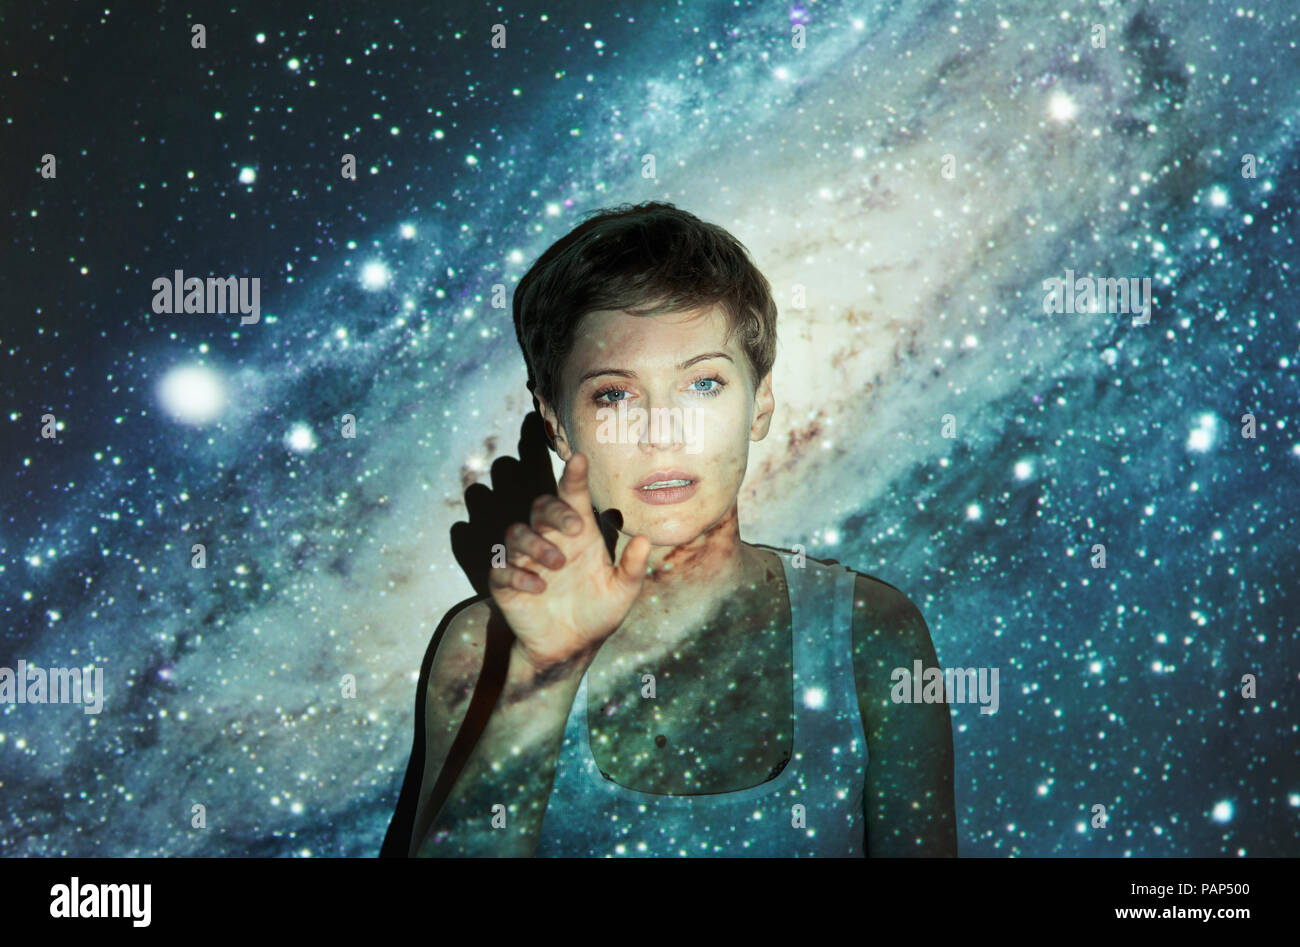 Portrait of blond woman, projection of milky way, imaginary touchscreen - Stock Image